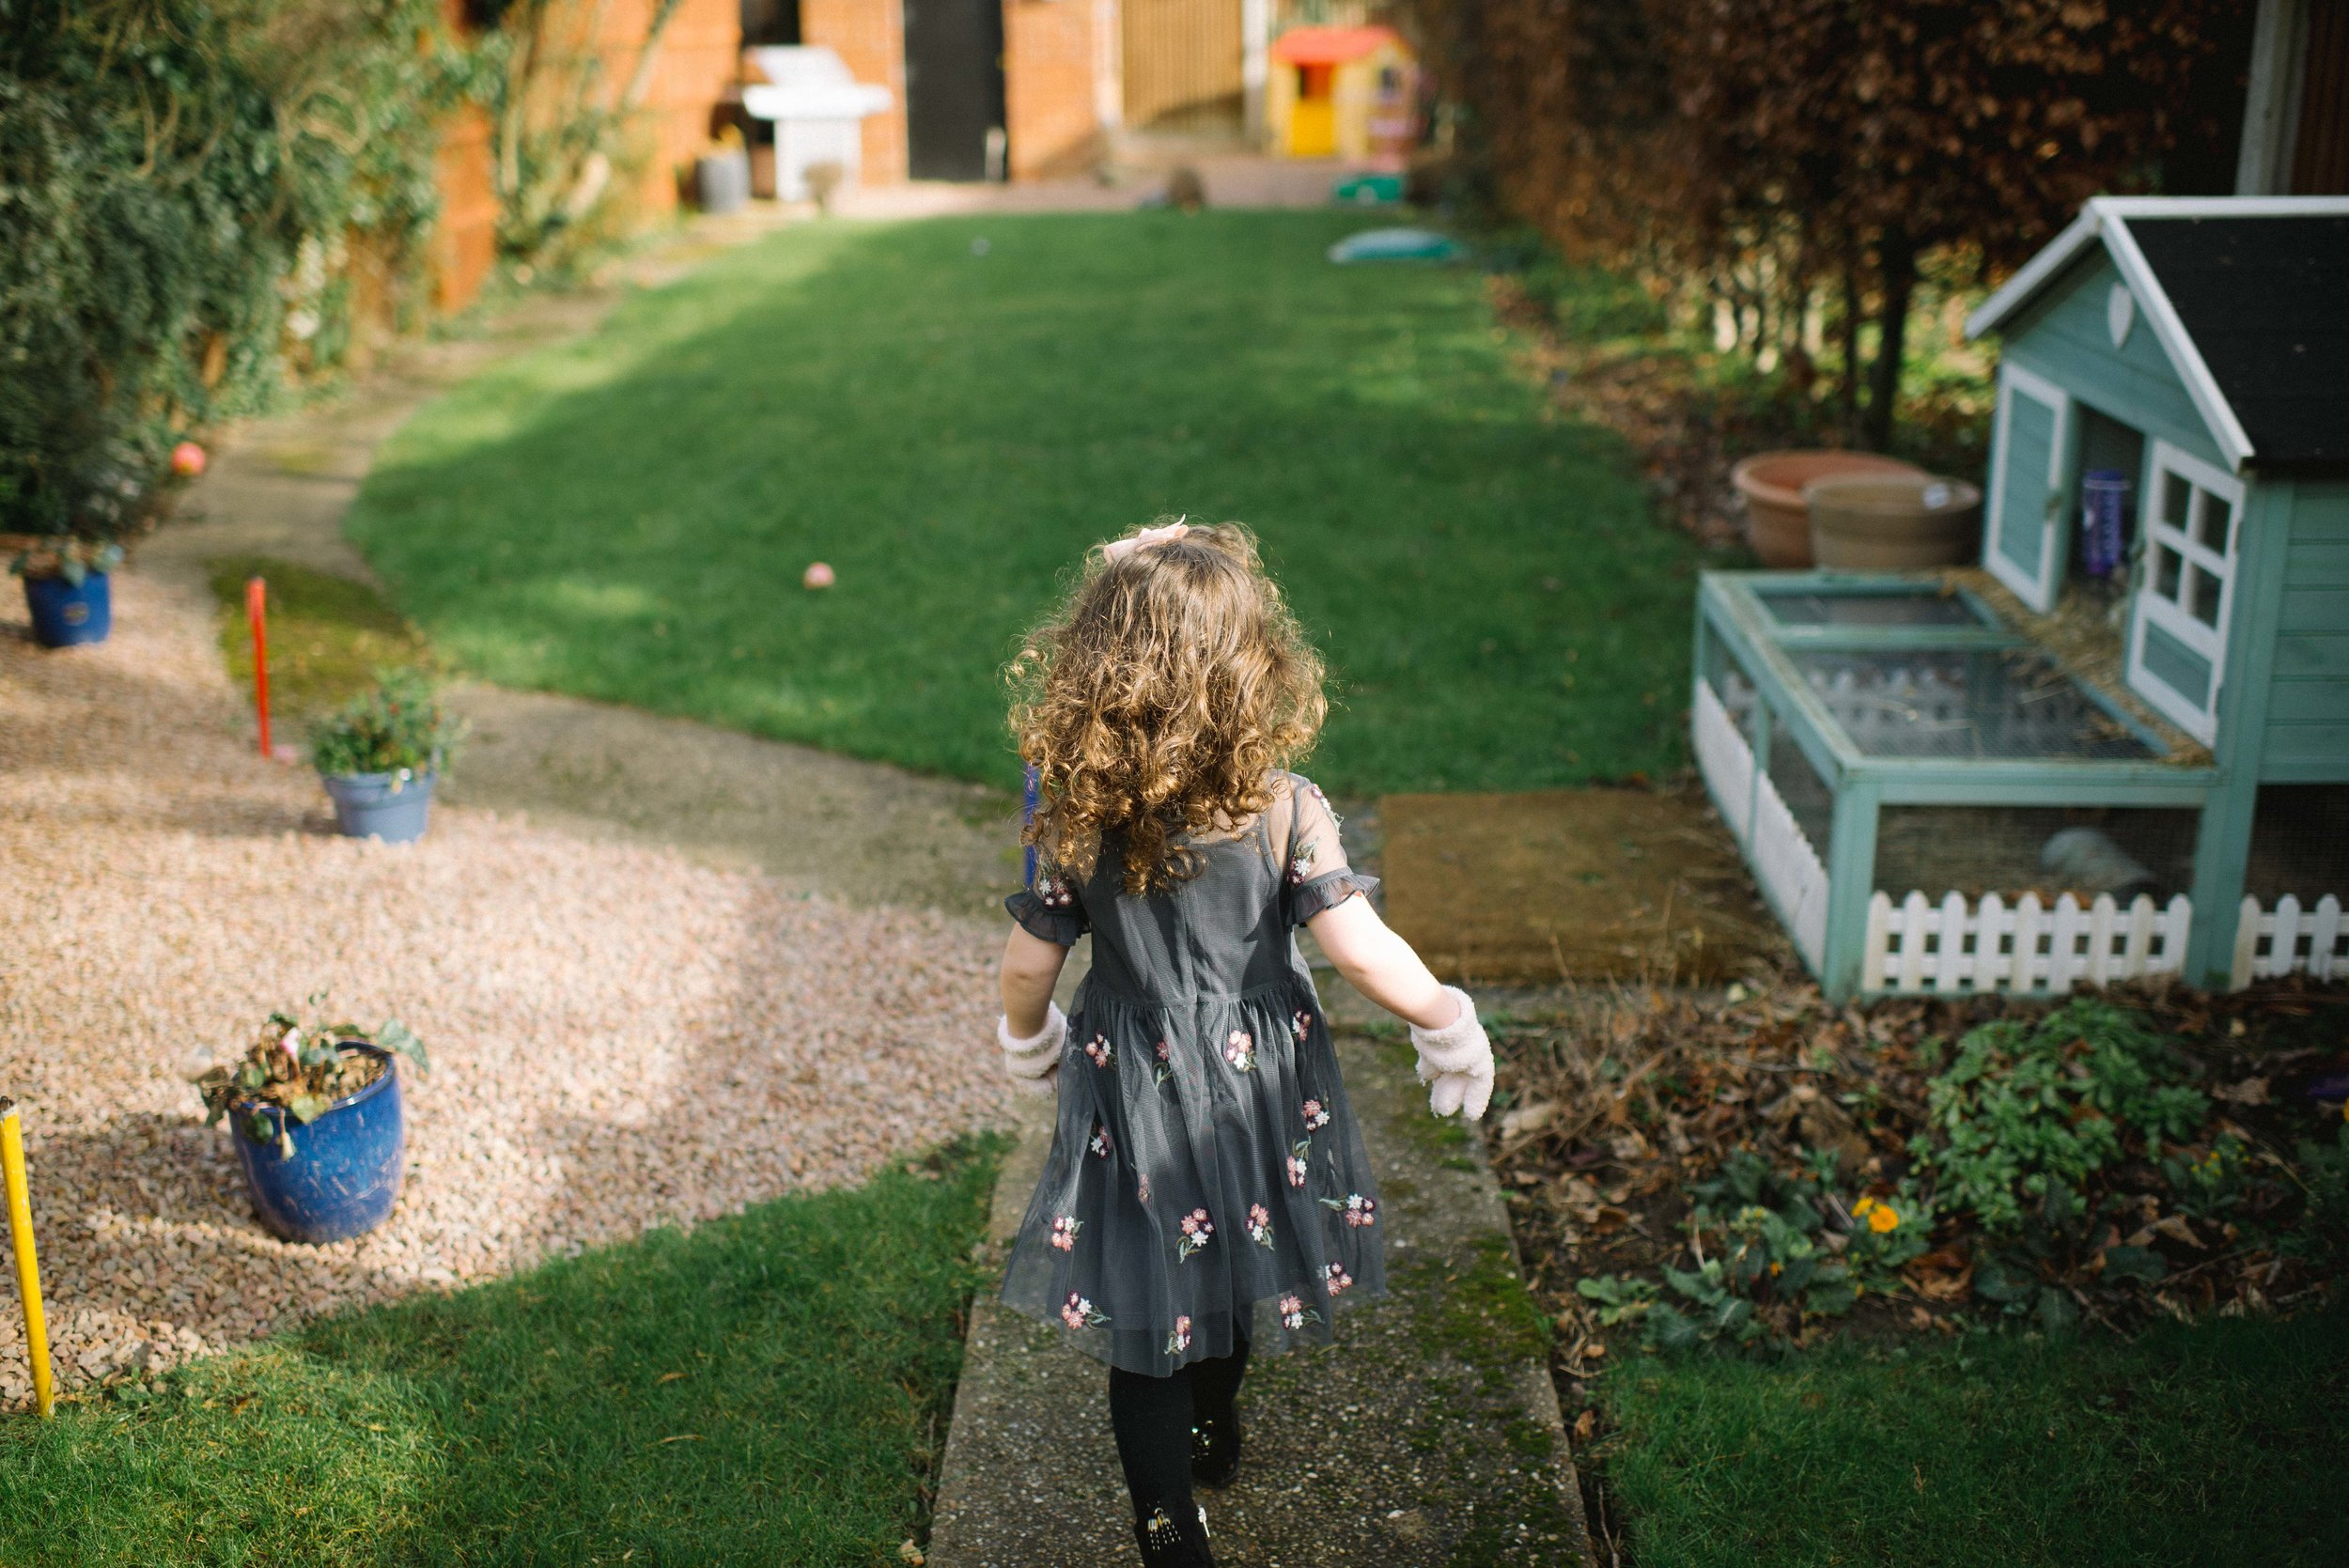 darcie and phoebe - playing the the garden with two little ladies